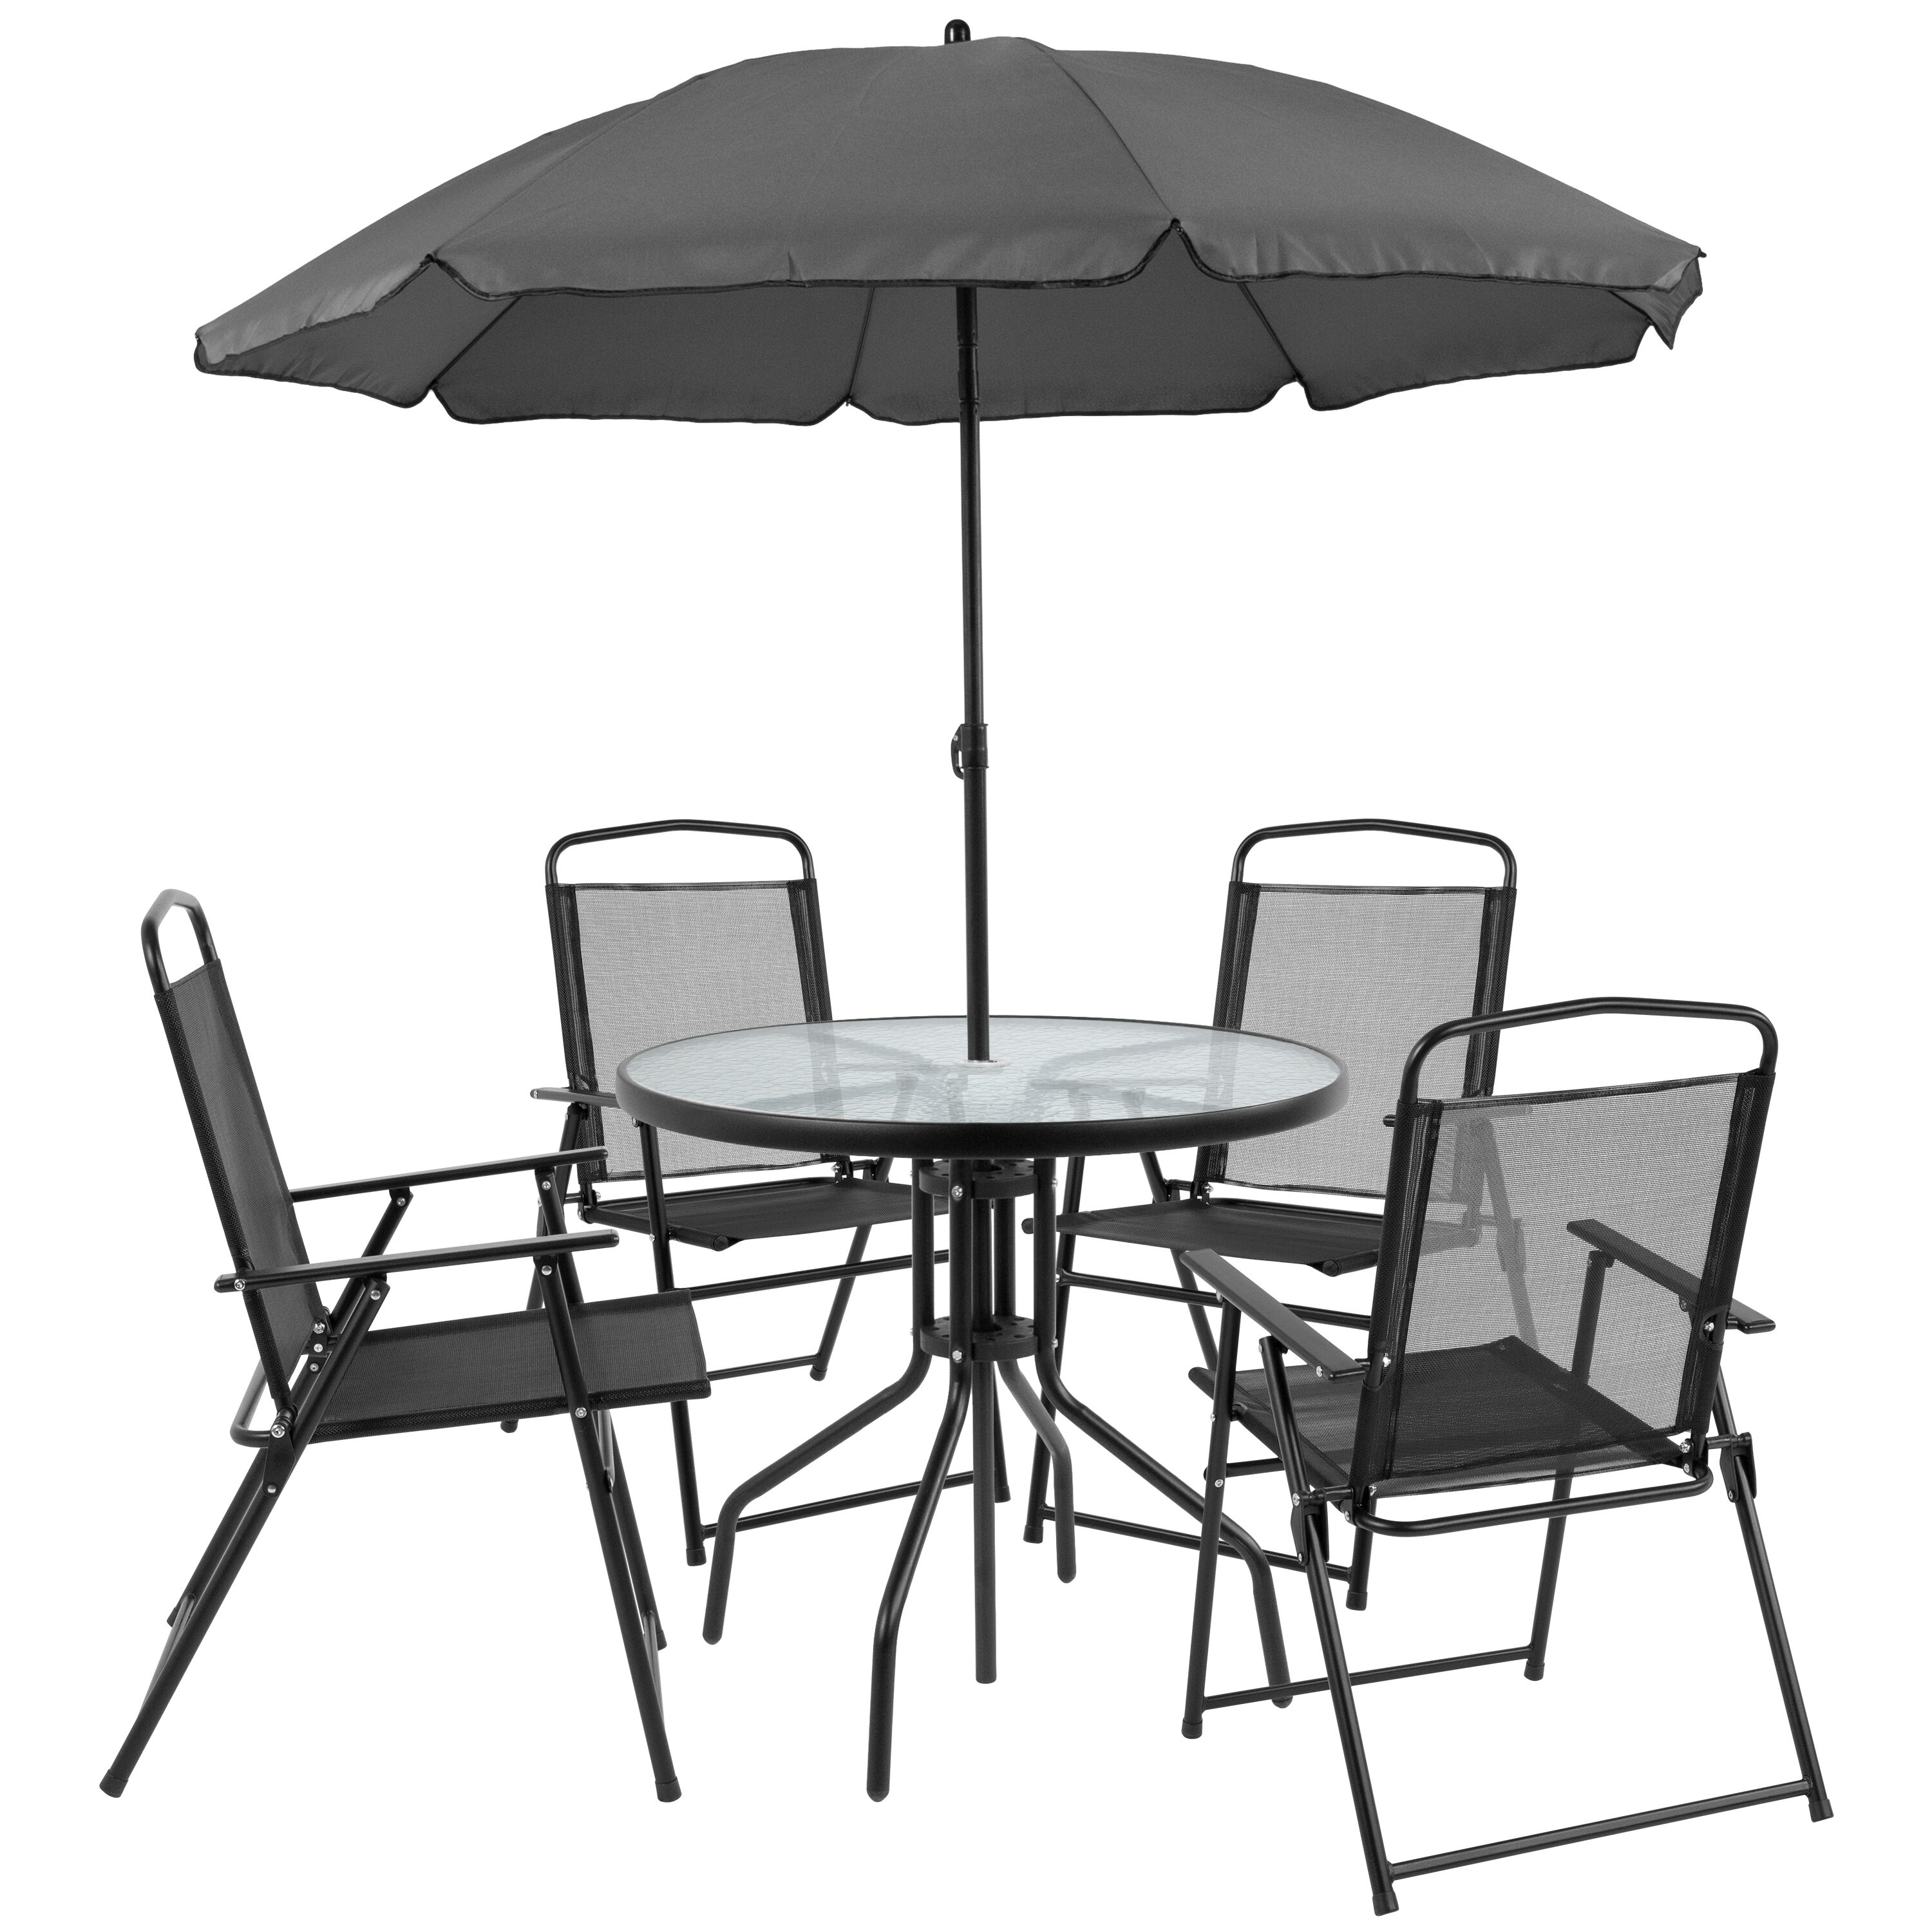 ... Our Nantucket 6 Piece Black Patio Garden Set With Table, Umbrella And 4  Folding Chairs ...